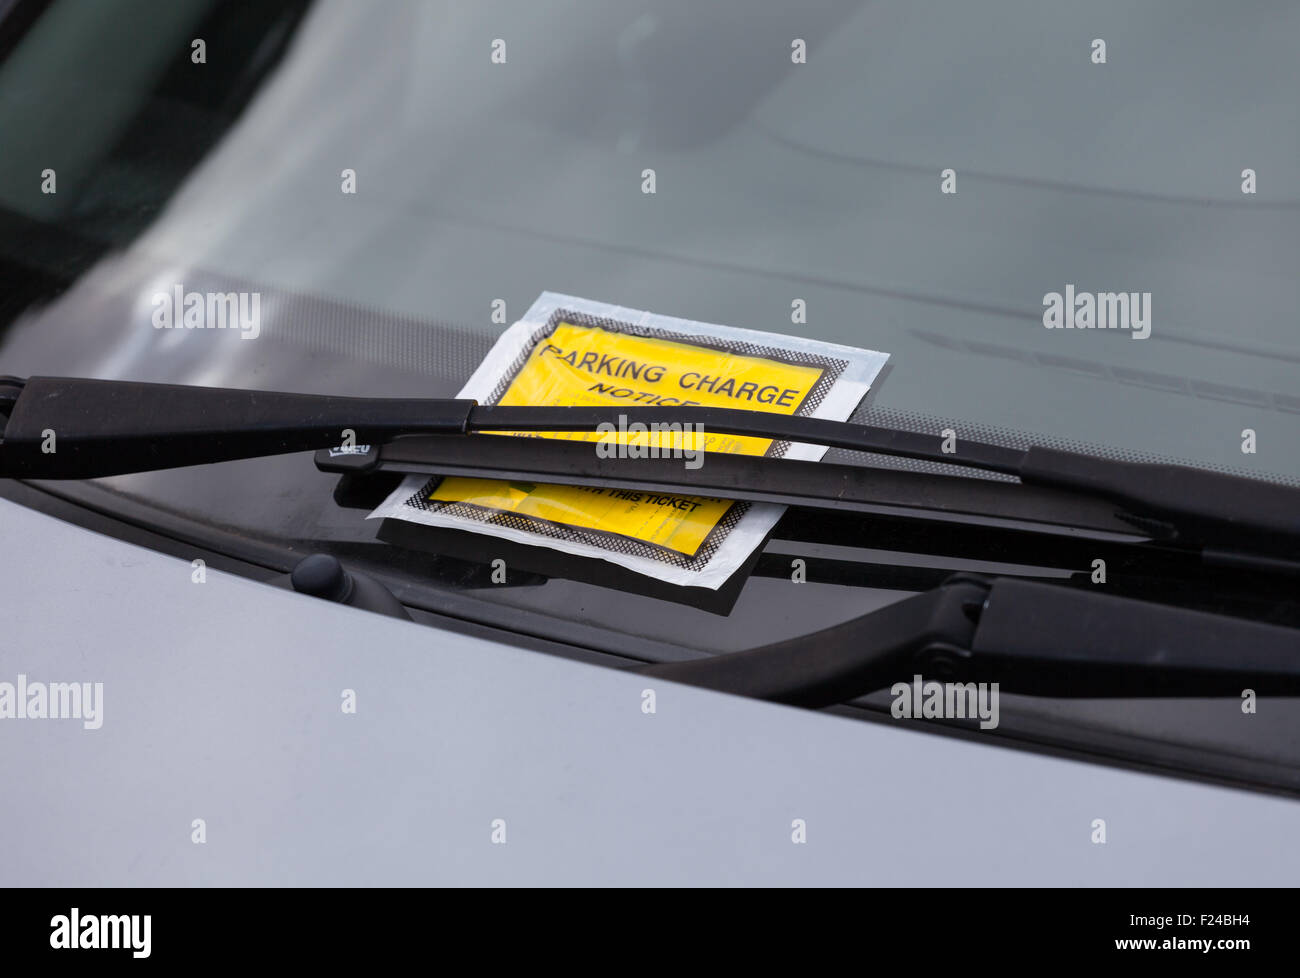 Penalty charge ticket for illegal car parking in the UK. - Stock Image